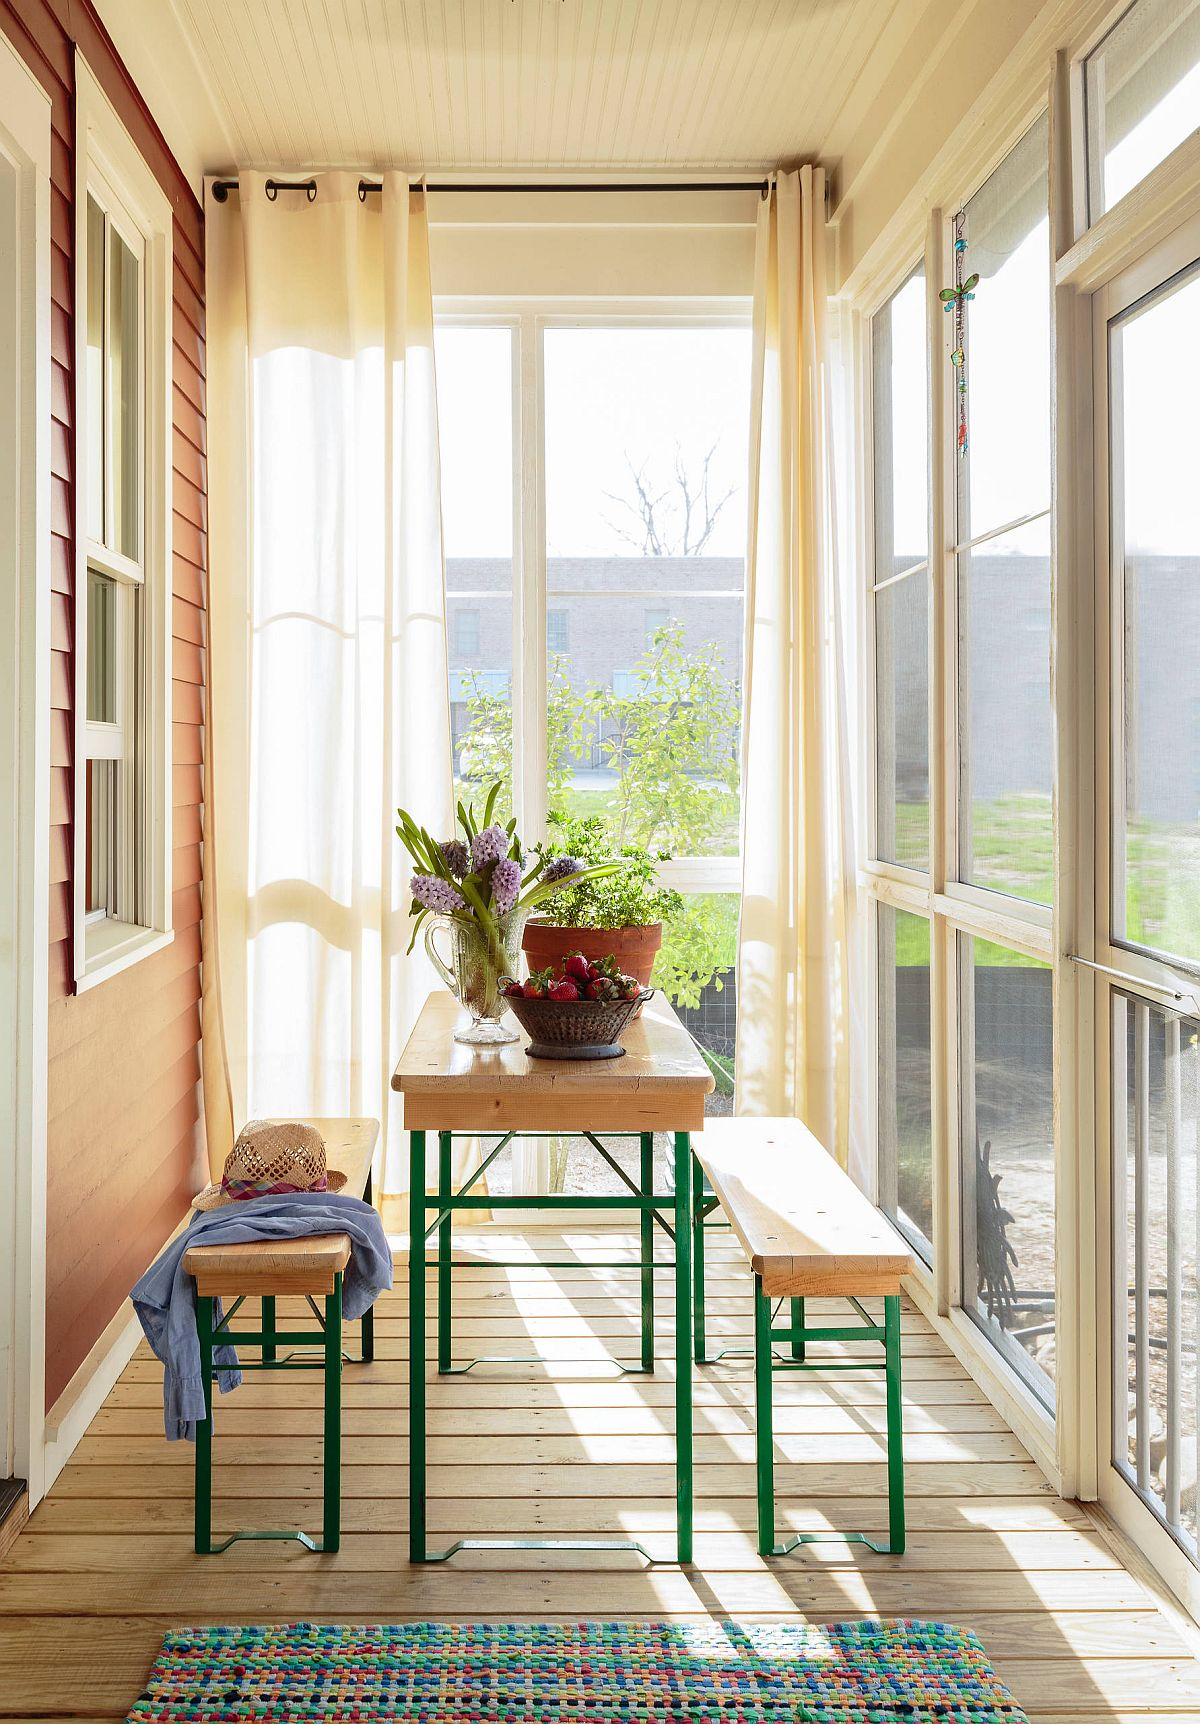 Modern farmhouse screened porch is the perfect sunroom that feels relaxing and elegant